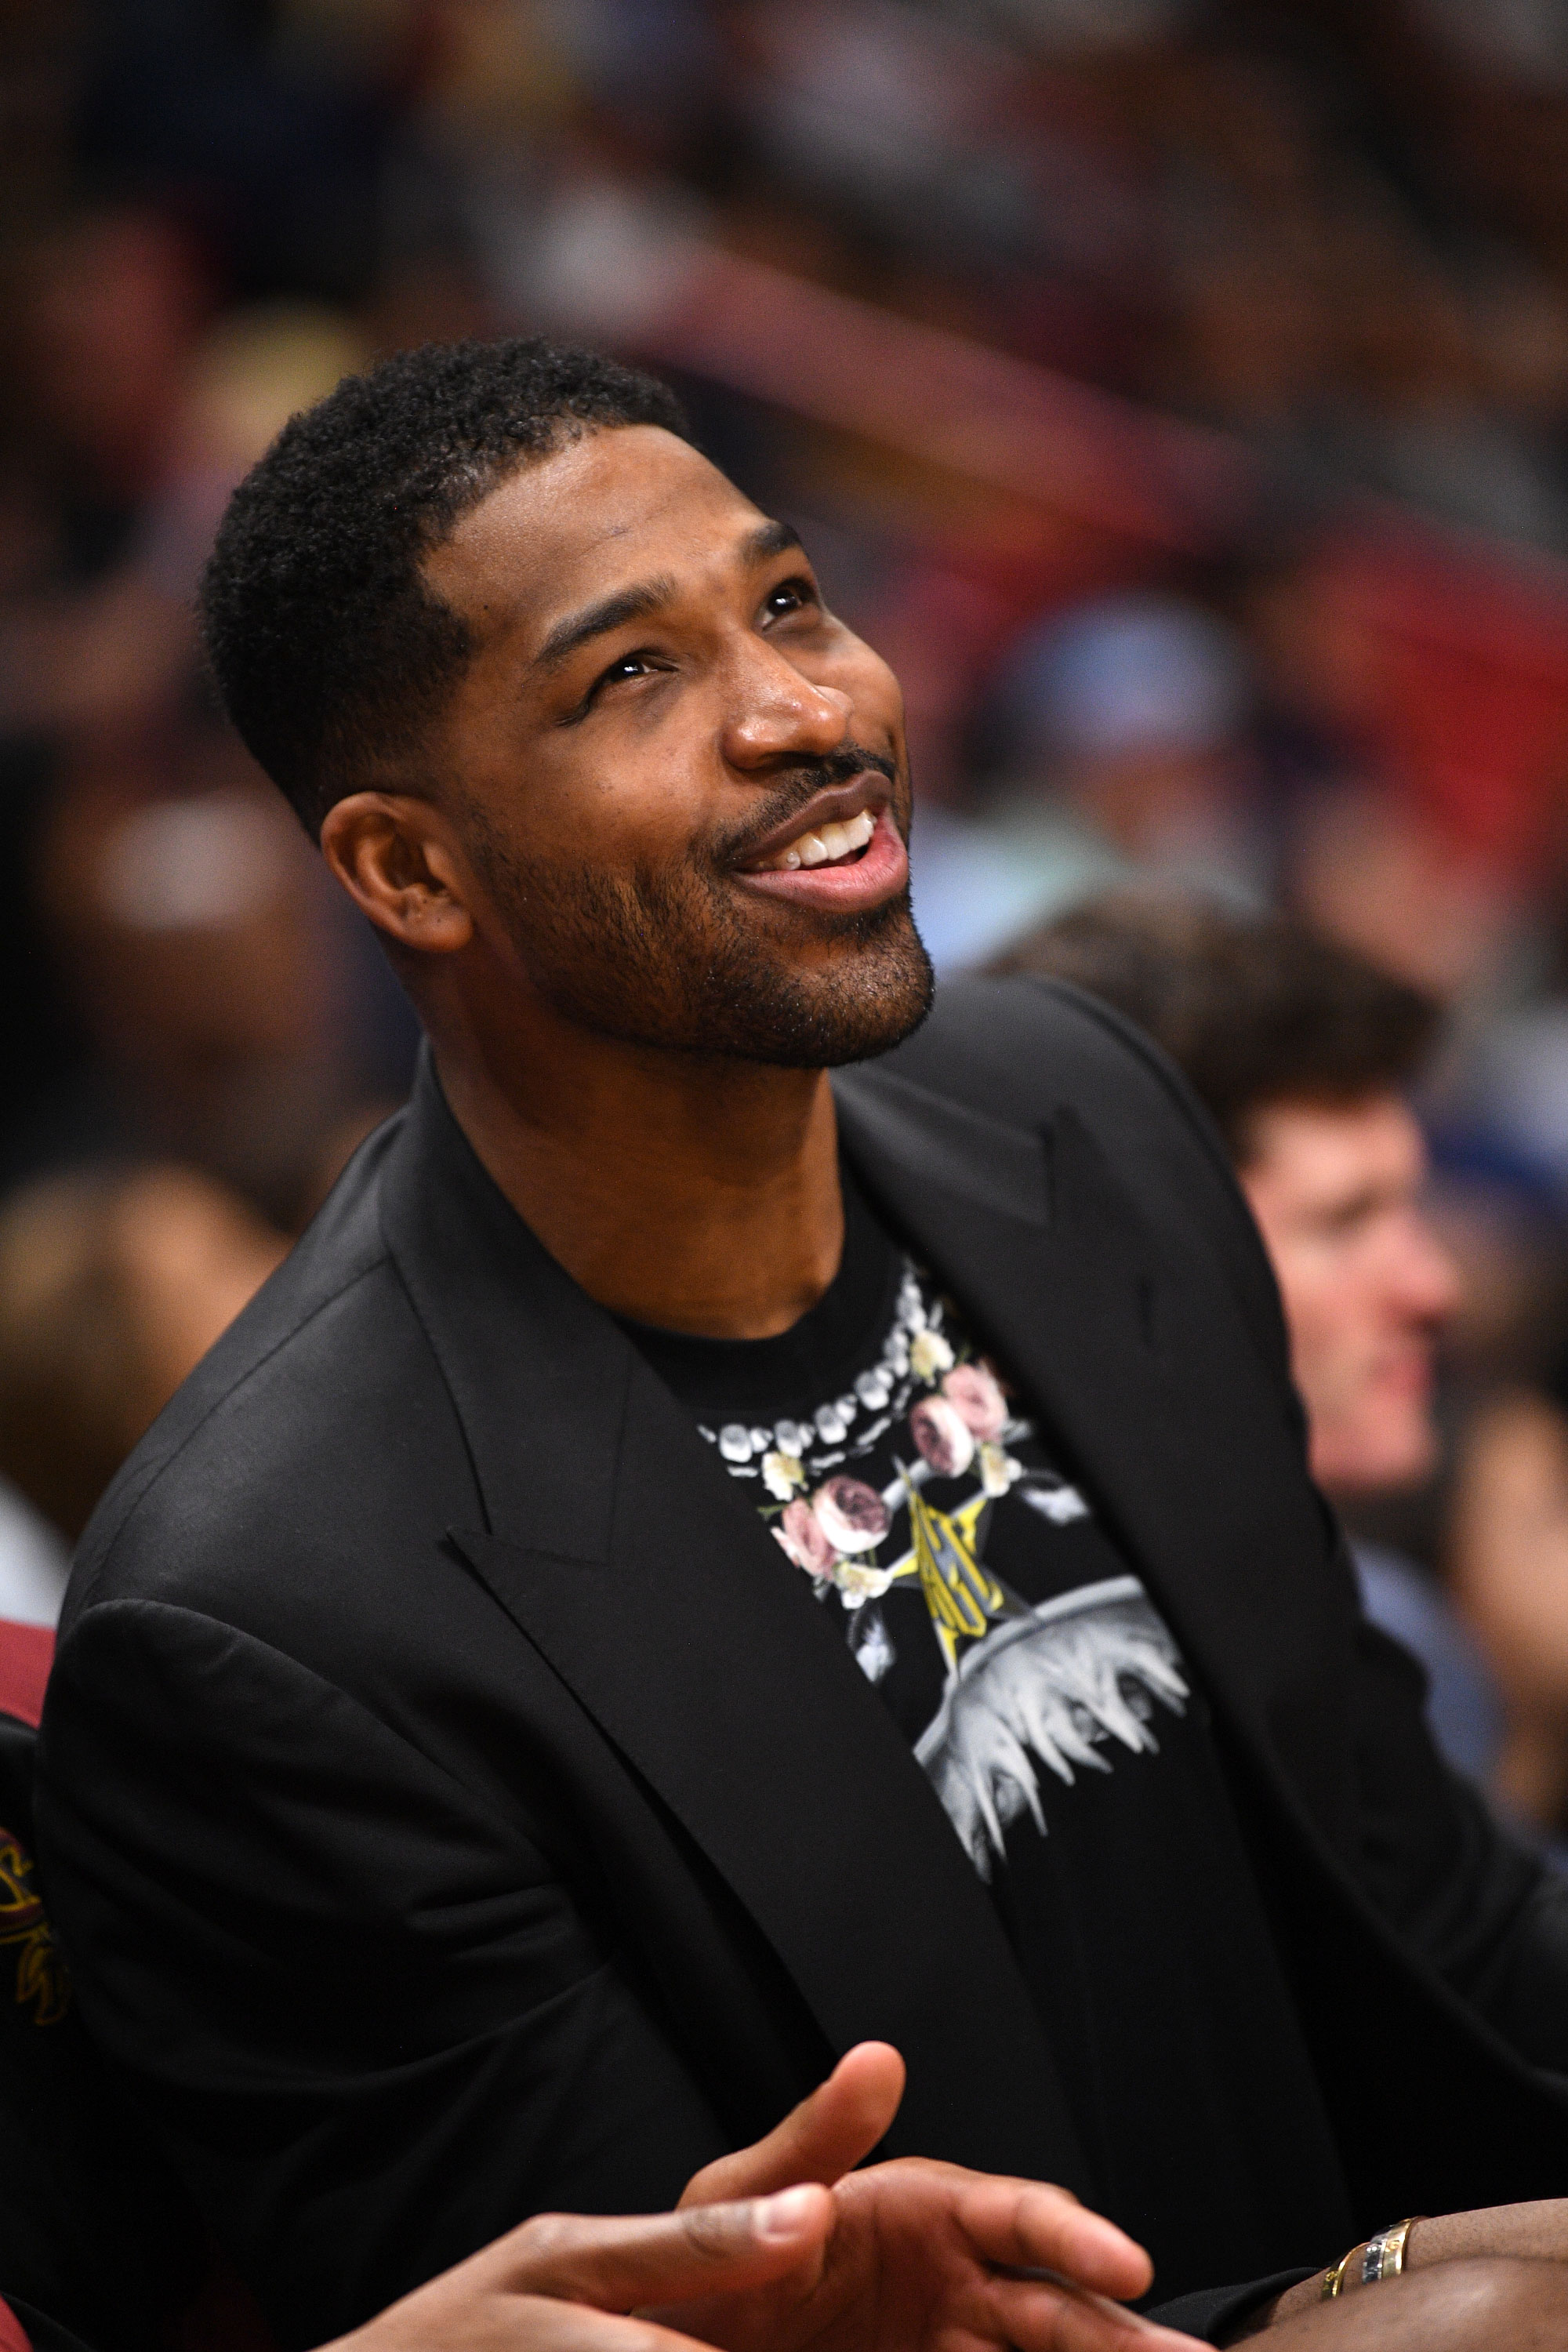 Tristan Thompson All Smiles at Cavaliers Game in Miami: Pics - Kardashian's family has remained mum on the subject, but they have backed the Revenge Body host by unfollowing Thompson on social media .